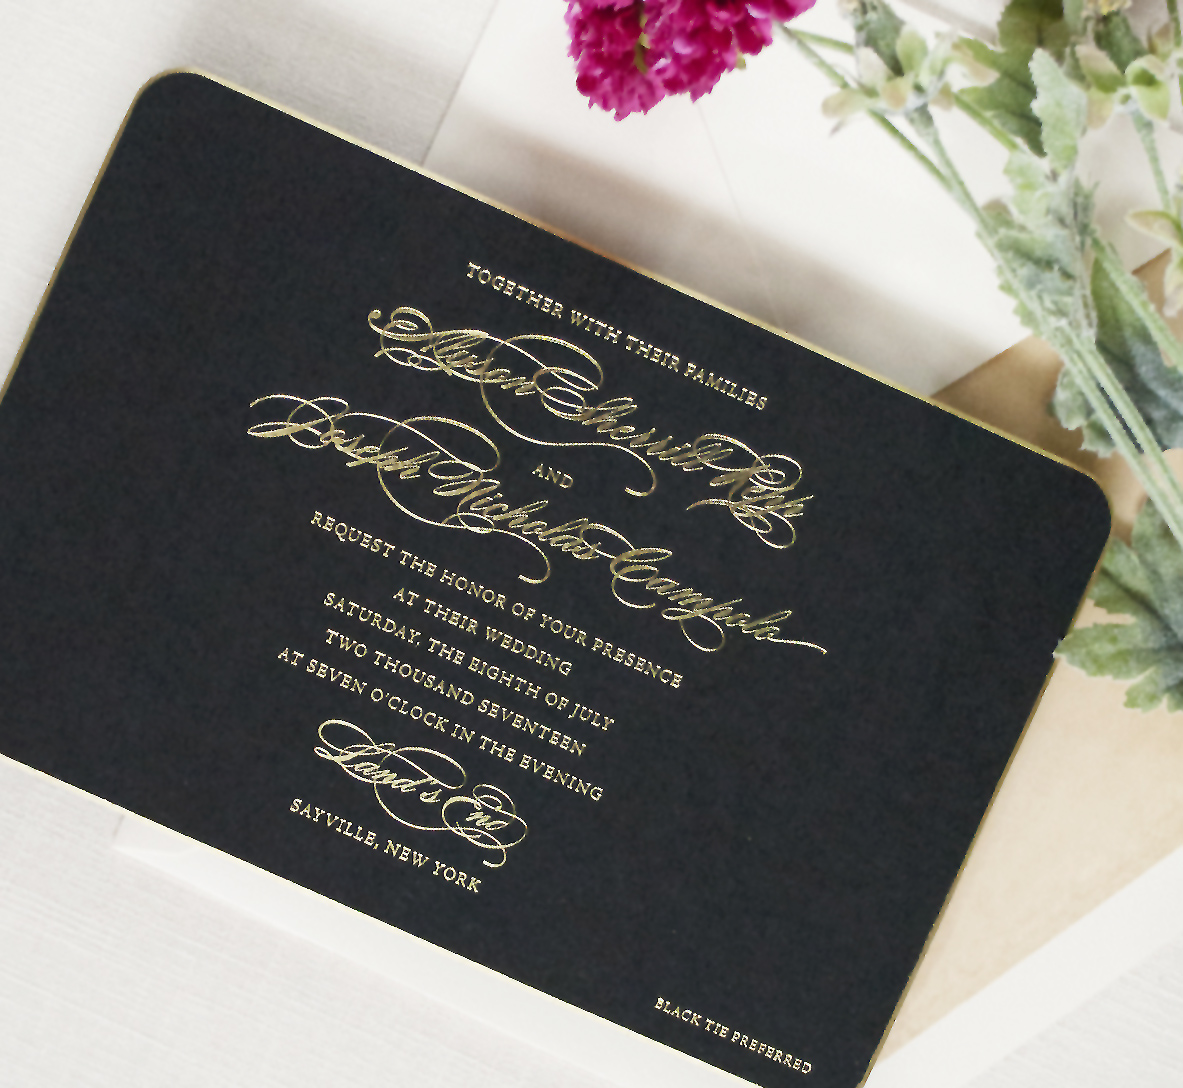 Formal Black and Gold Wedding Invitation, Foil text on black paper, gold gilded edge